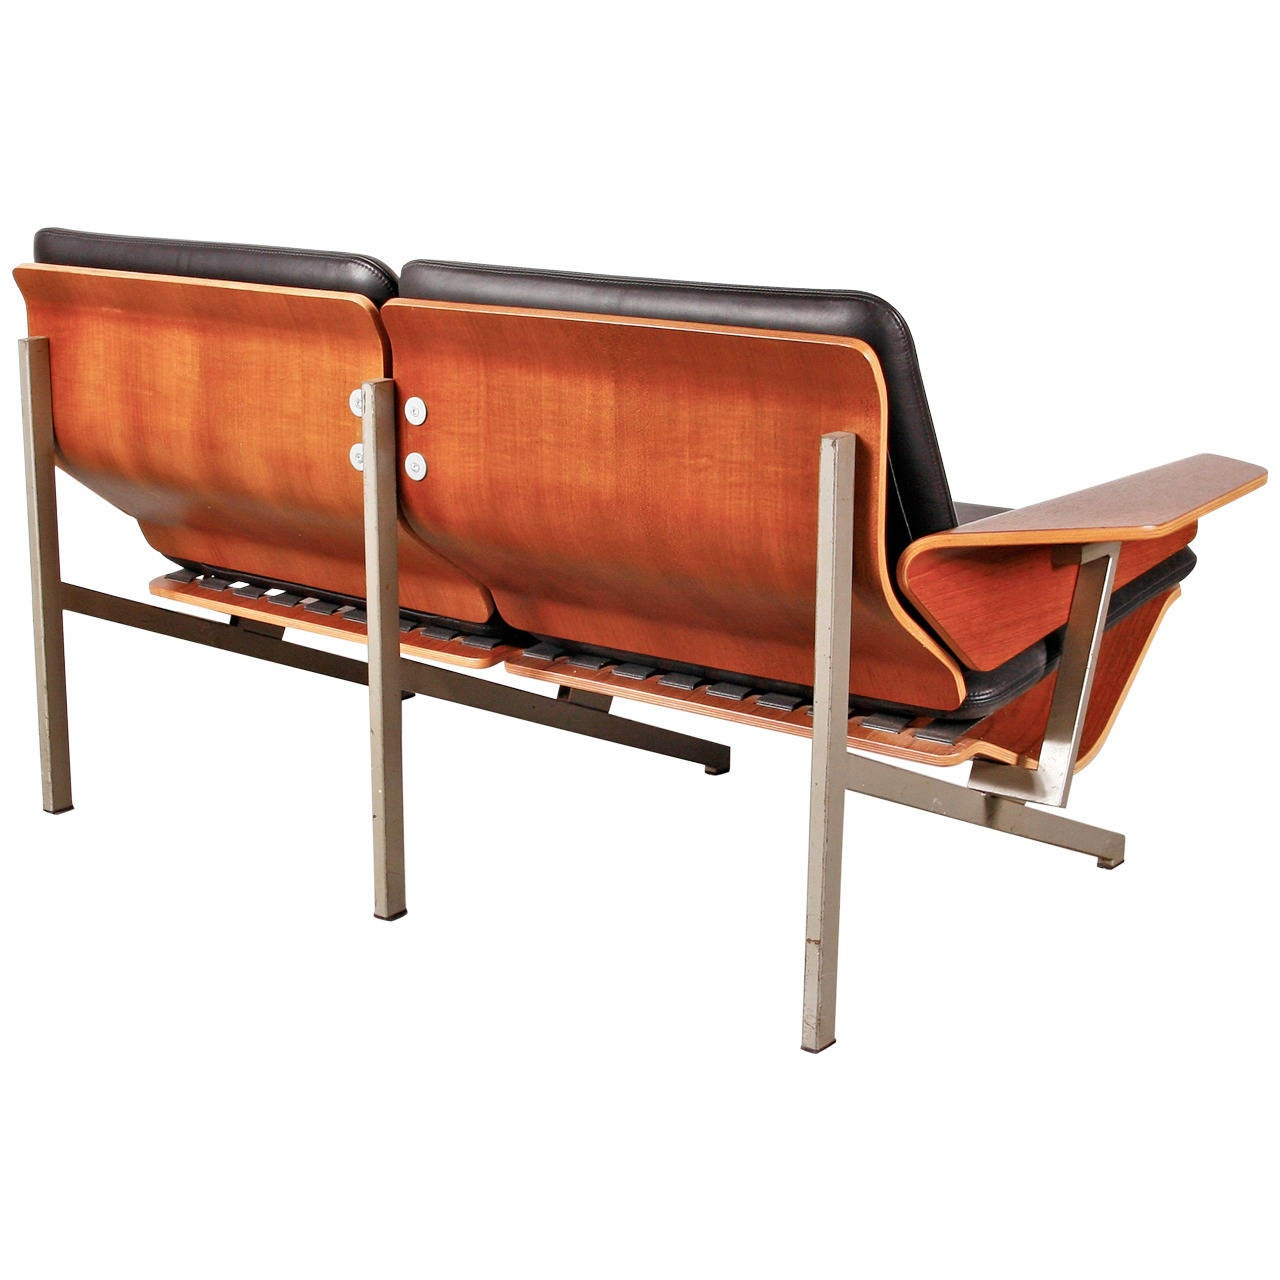 Two-seat sofa, model FM50 designed by Cornelis Zitman in 1964.